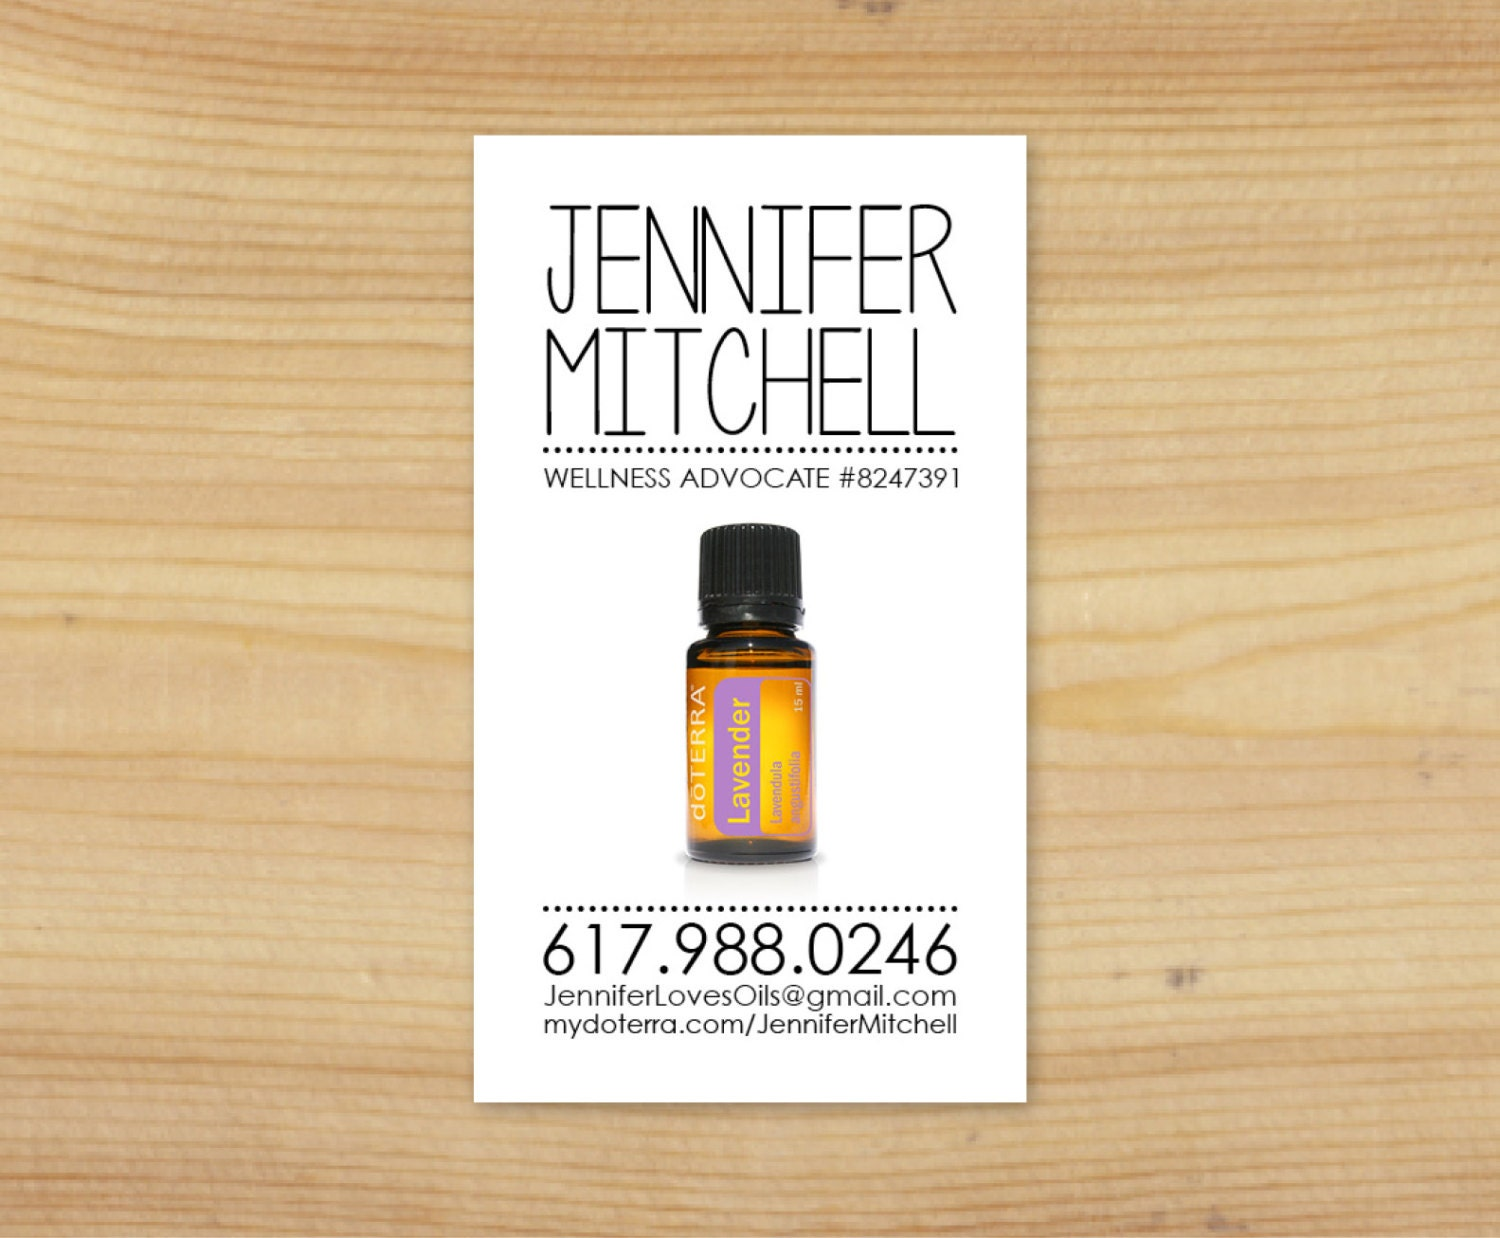 cool essential oil business card design dōTERRA by TheOilsMama